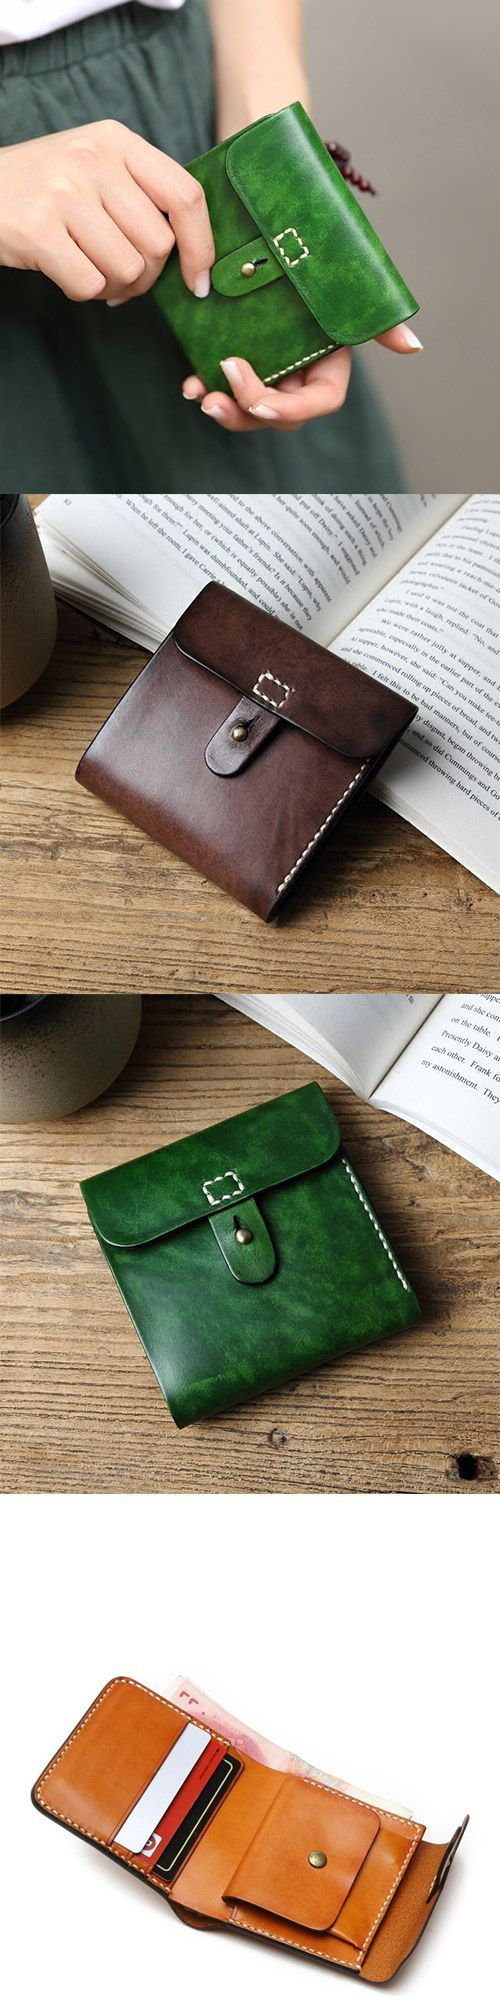 Handmade leather vintage women short wallet purse wallet - buy handbags online, women's bags and purses, leather ladies handbags *sponsored https://www.pinterest.com/purses_handbags/ https://www.pinterest.com/explore/hand-bags/ https://www.pinterest.com/purses_handbags/black-purse/ https://www.katespade.com/new/handbags/